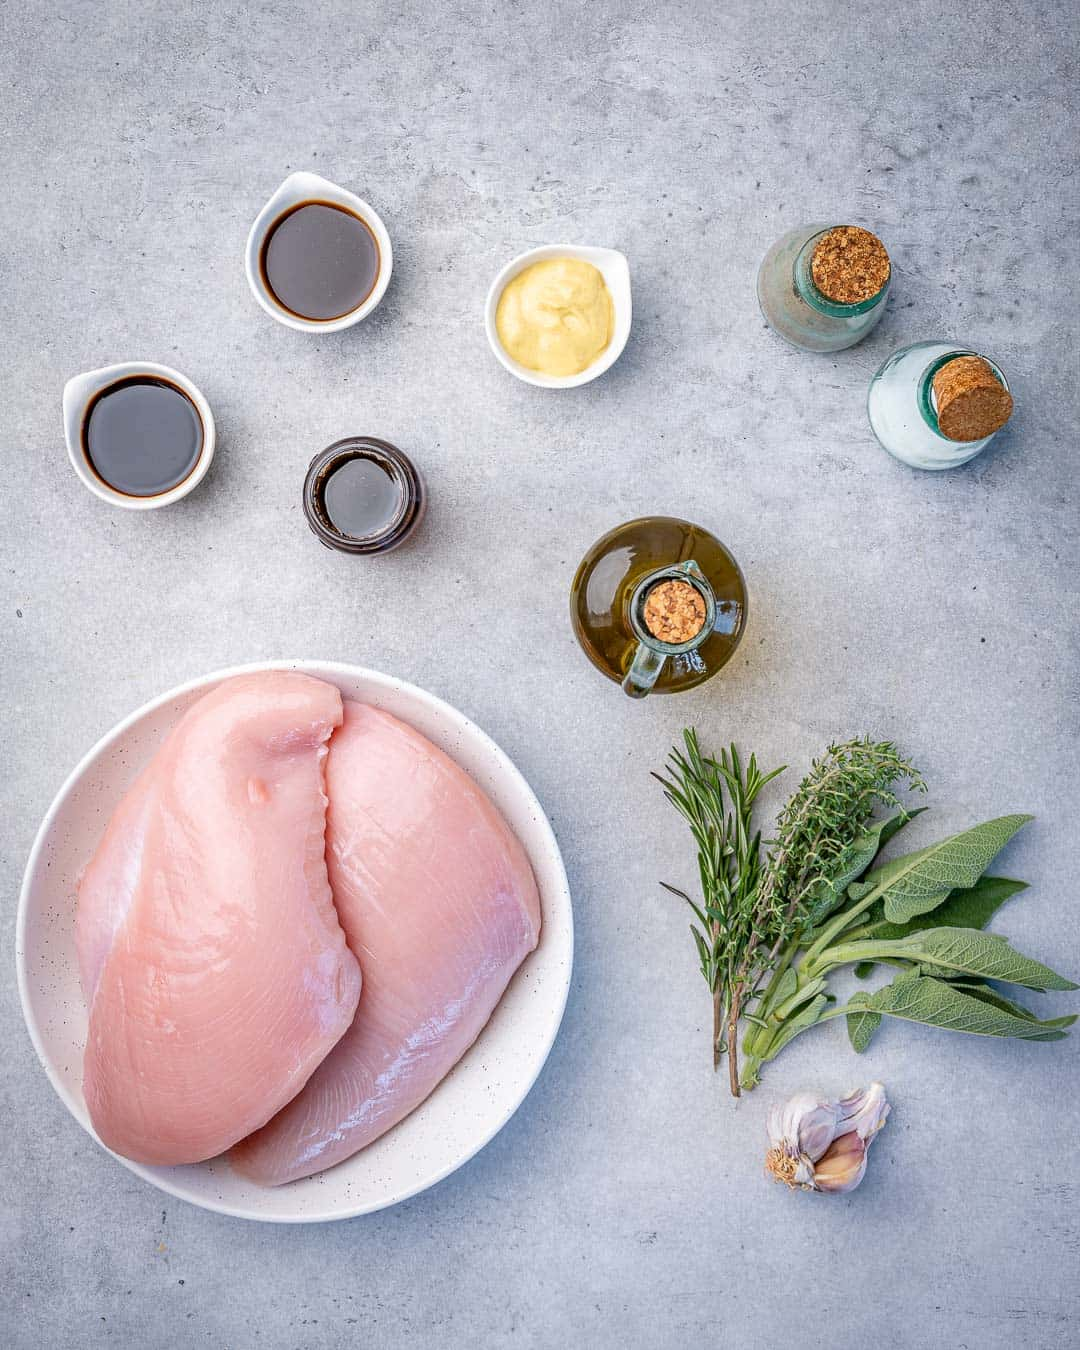 Ingredients for roasted turkey breast and maple mustard glaze